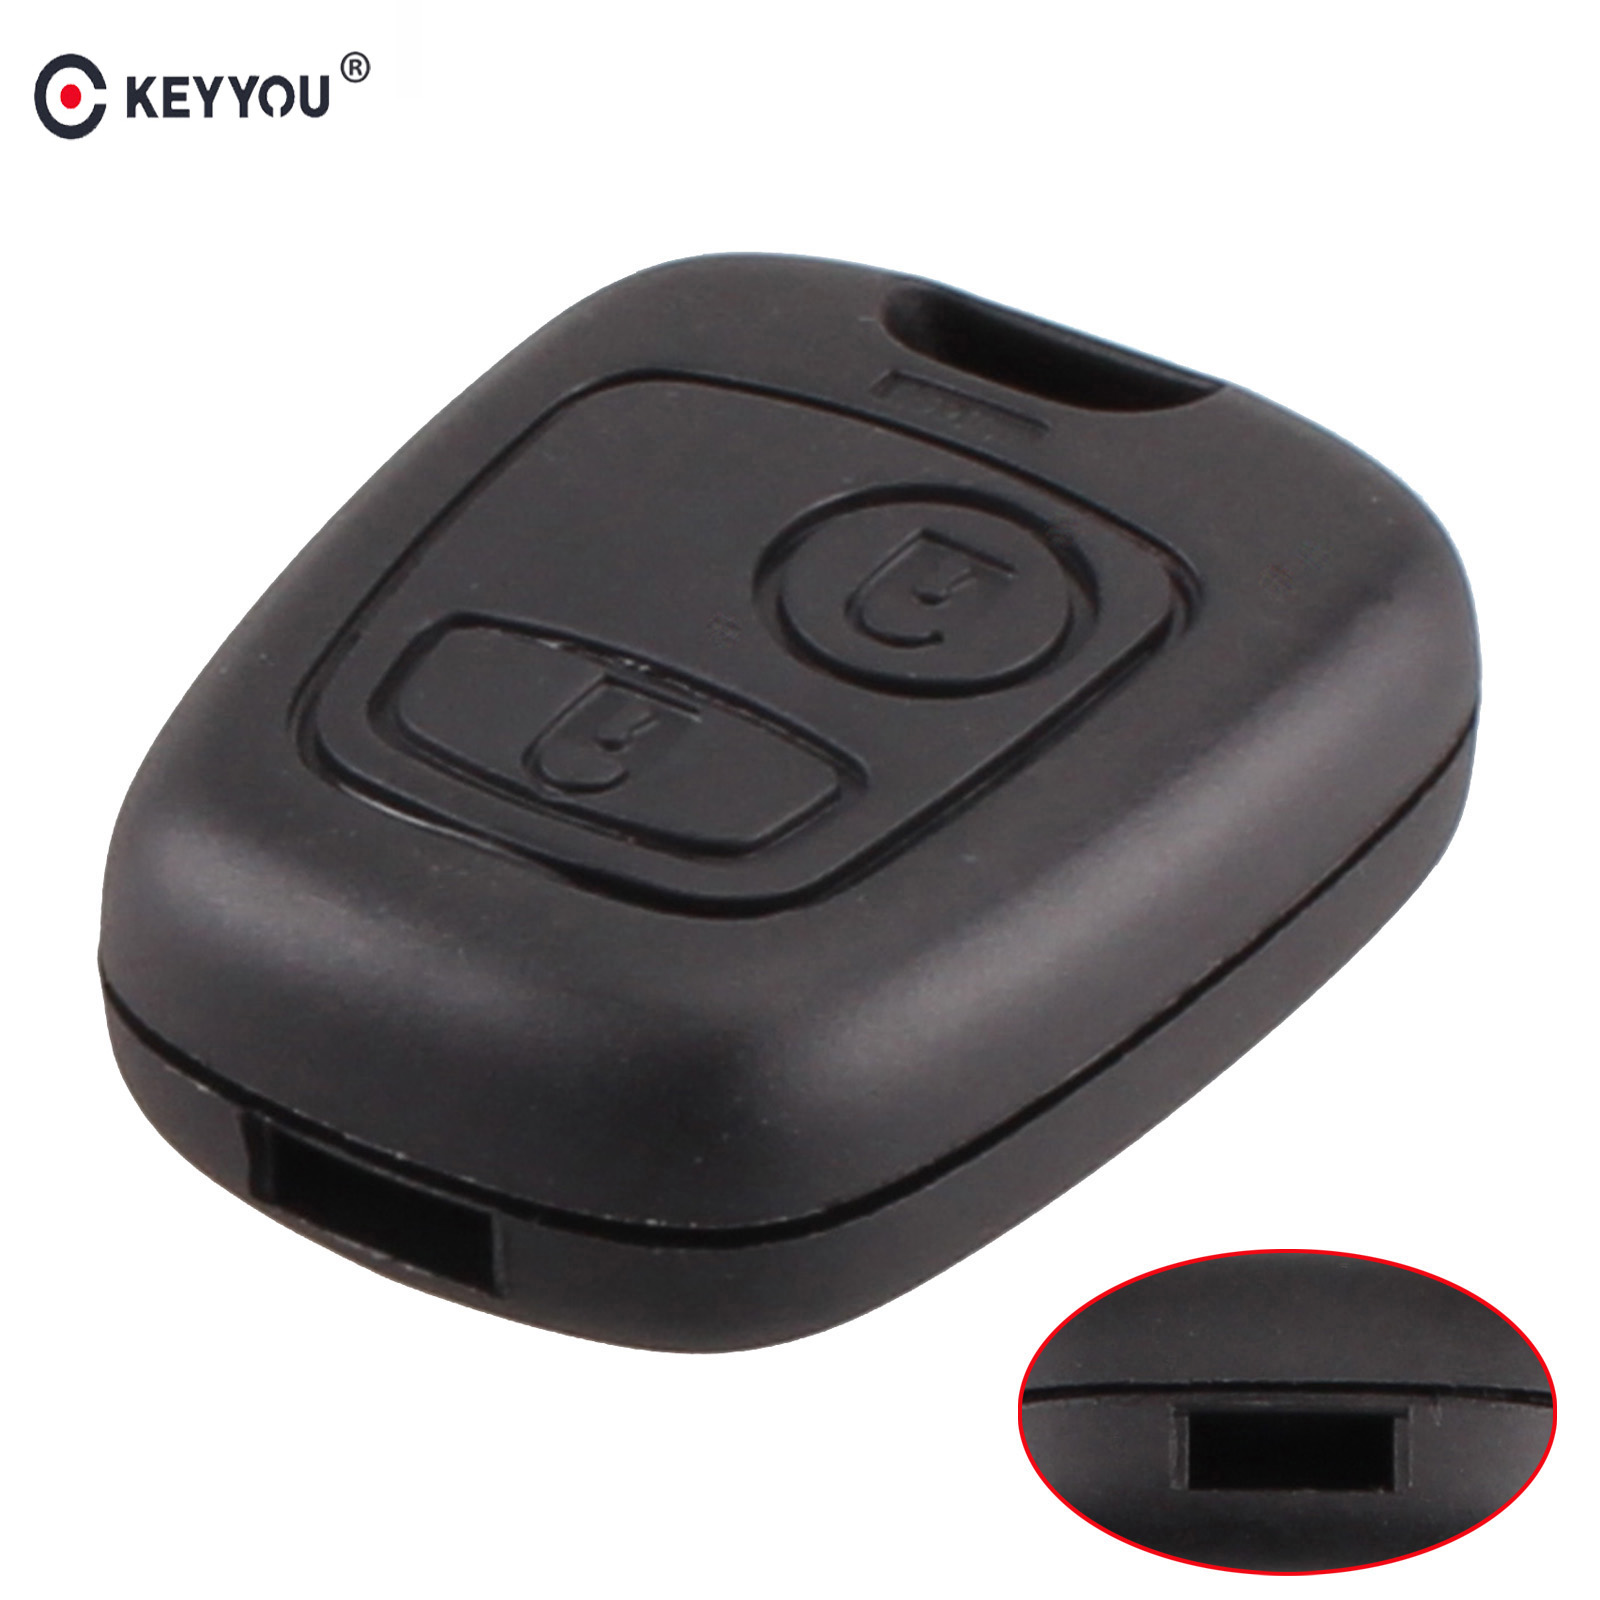 KEYYOU Replacement 2 Button Remote Blank Key Cover Case Fob For Citroen C1 C2 C3 C4 XSARA Picasso Auto Car Key Case shell цена